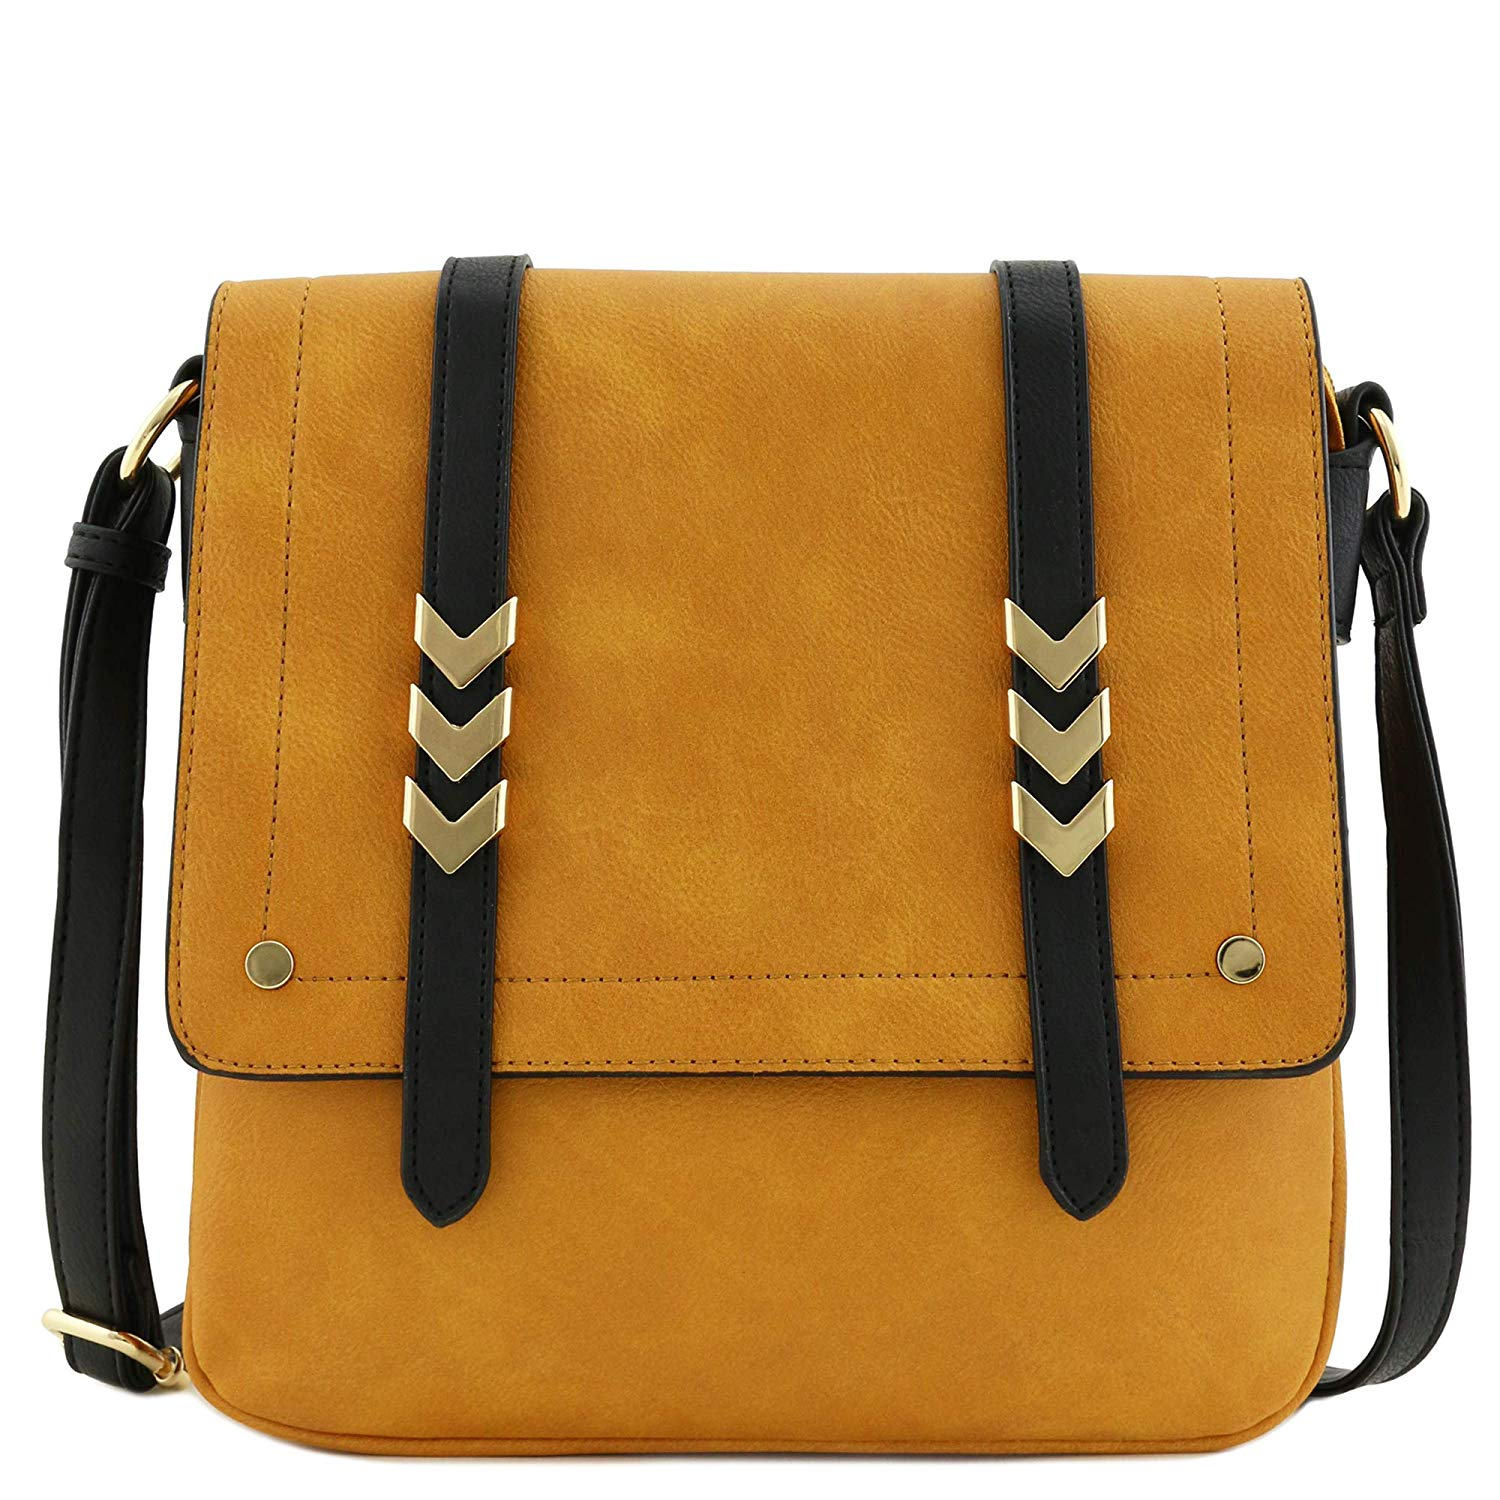 Review of Double Compartment Large Flapover Crossbody Bag by Alyssa